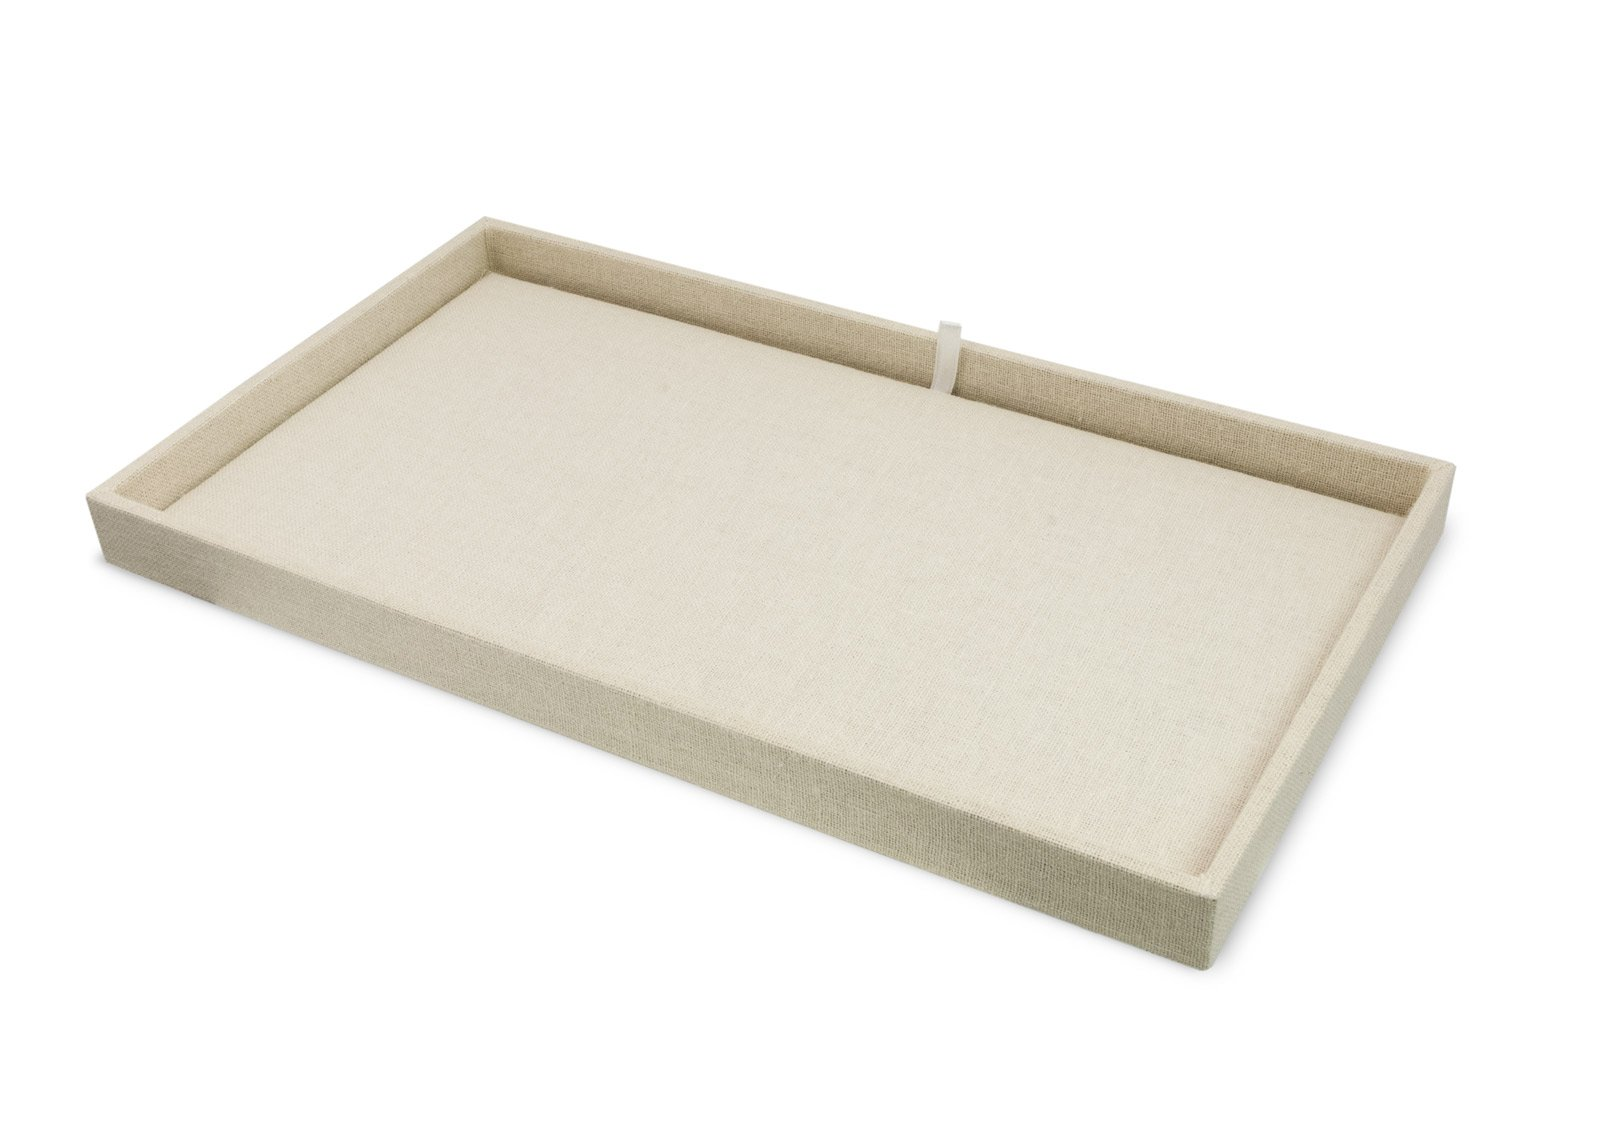 Linen Project Tray and Insert Pad for Jewelry Display